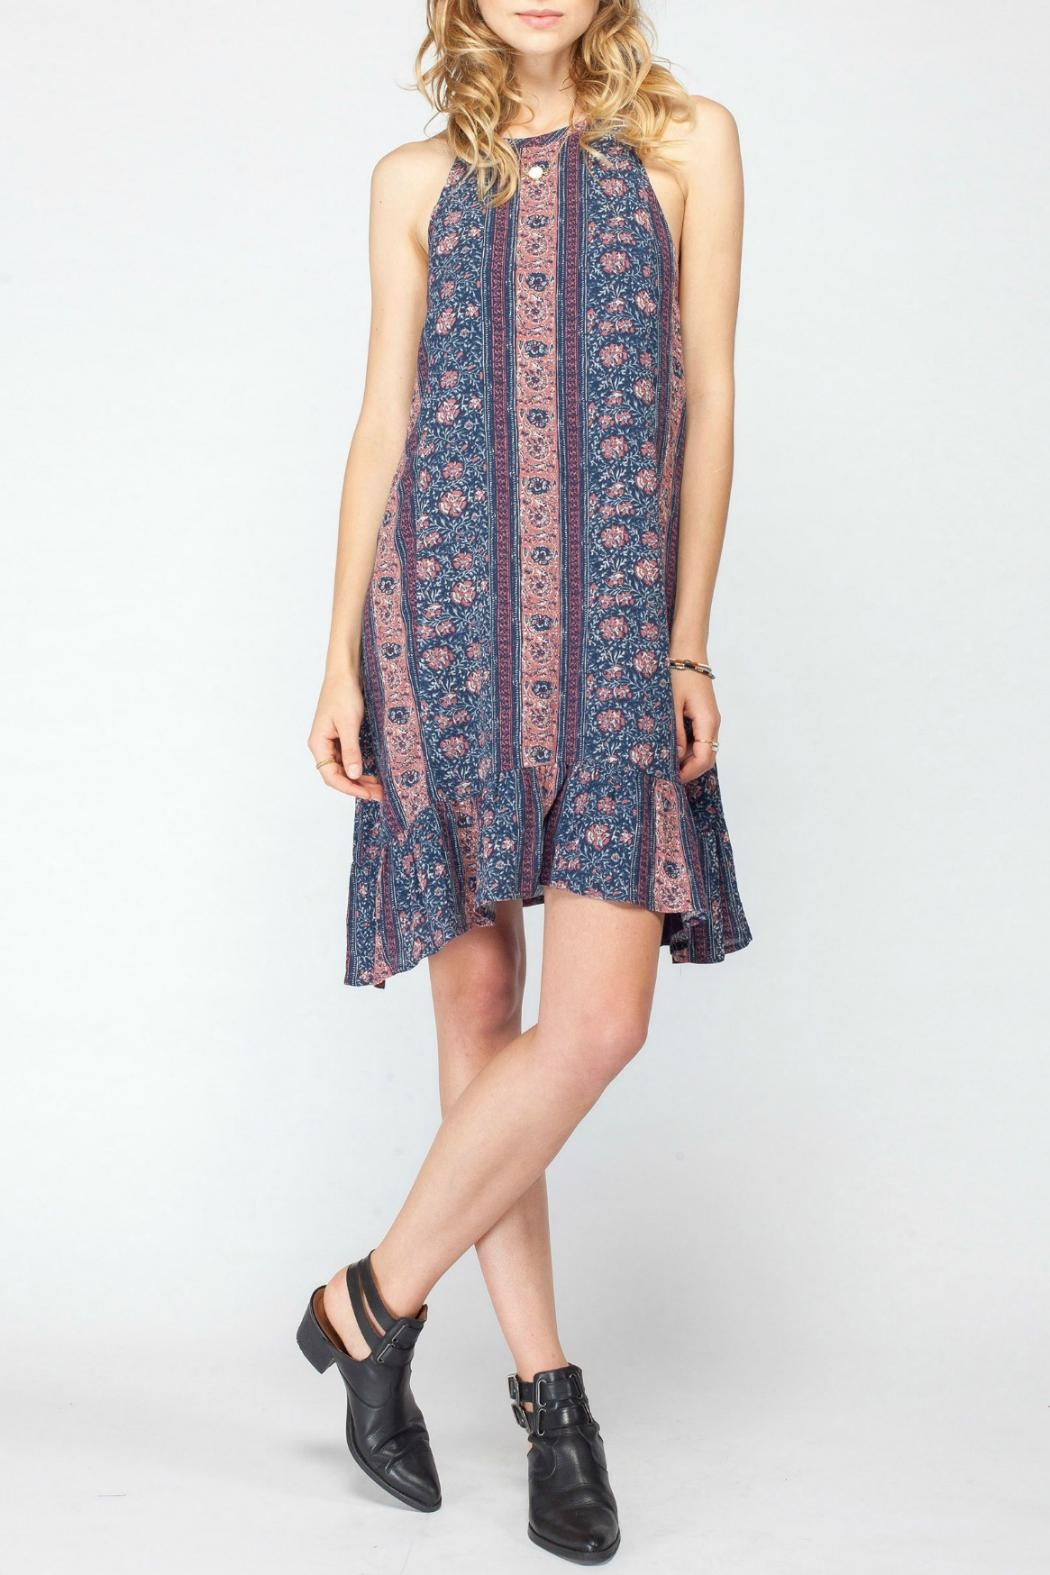 Gentle Fawn Laguna Dress - Main Image